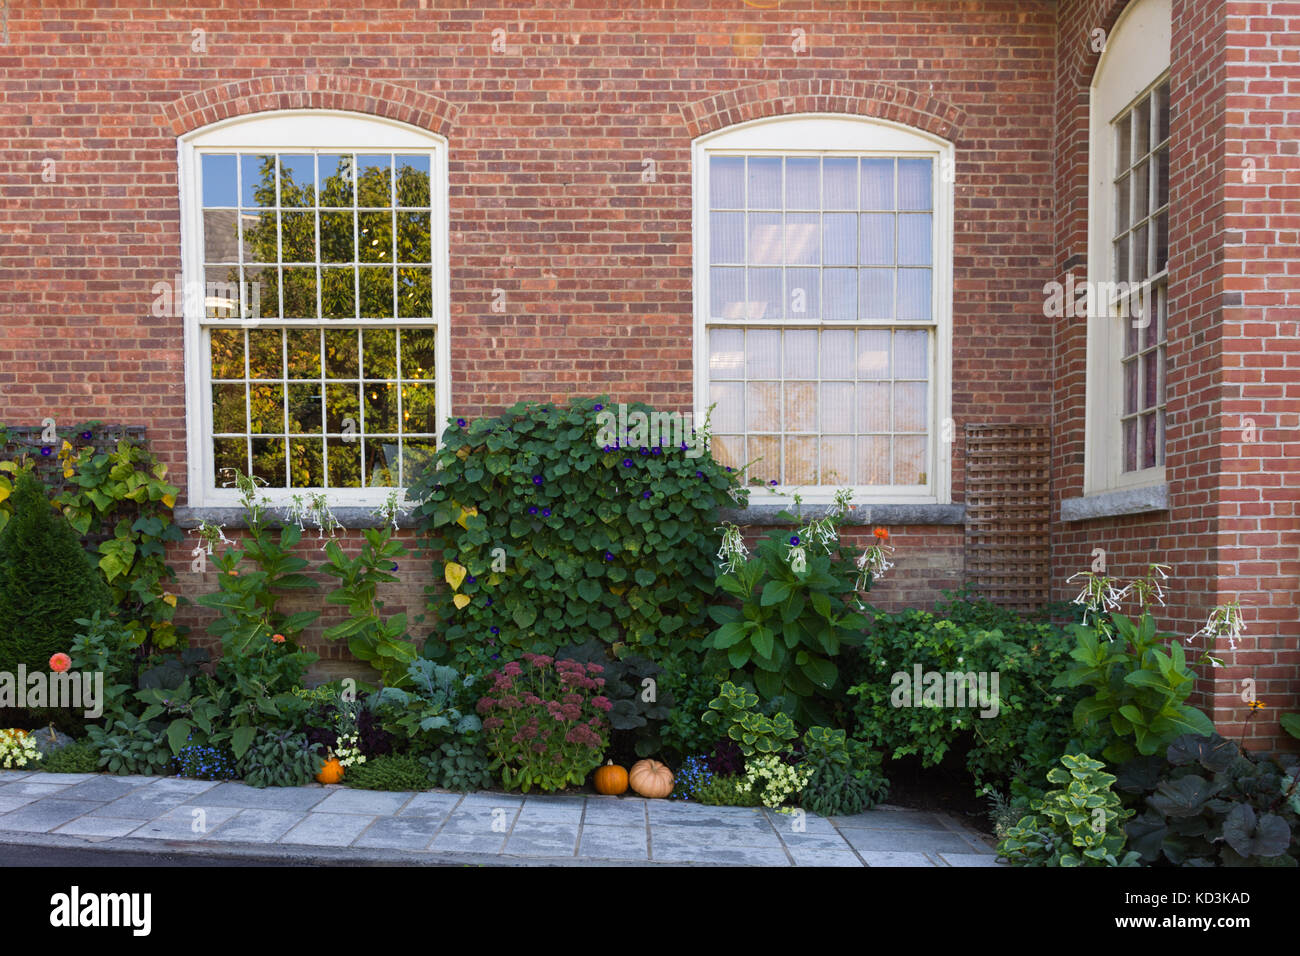 A fall themed garden in front of a brick building with shiny multi-paned windows in the background. - Stock Image